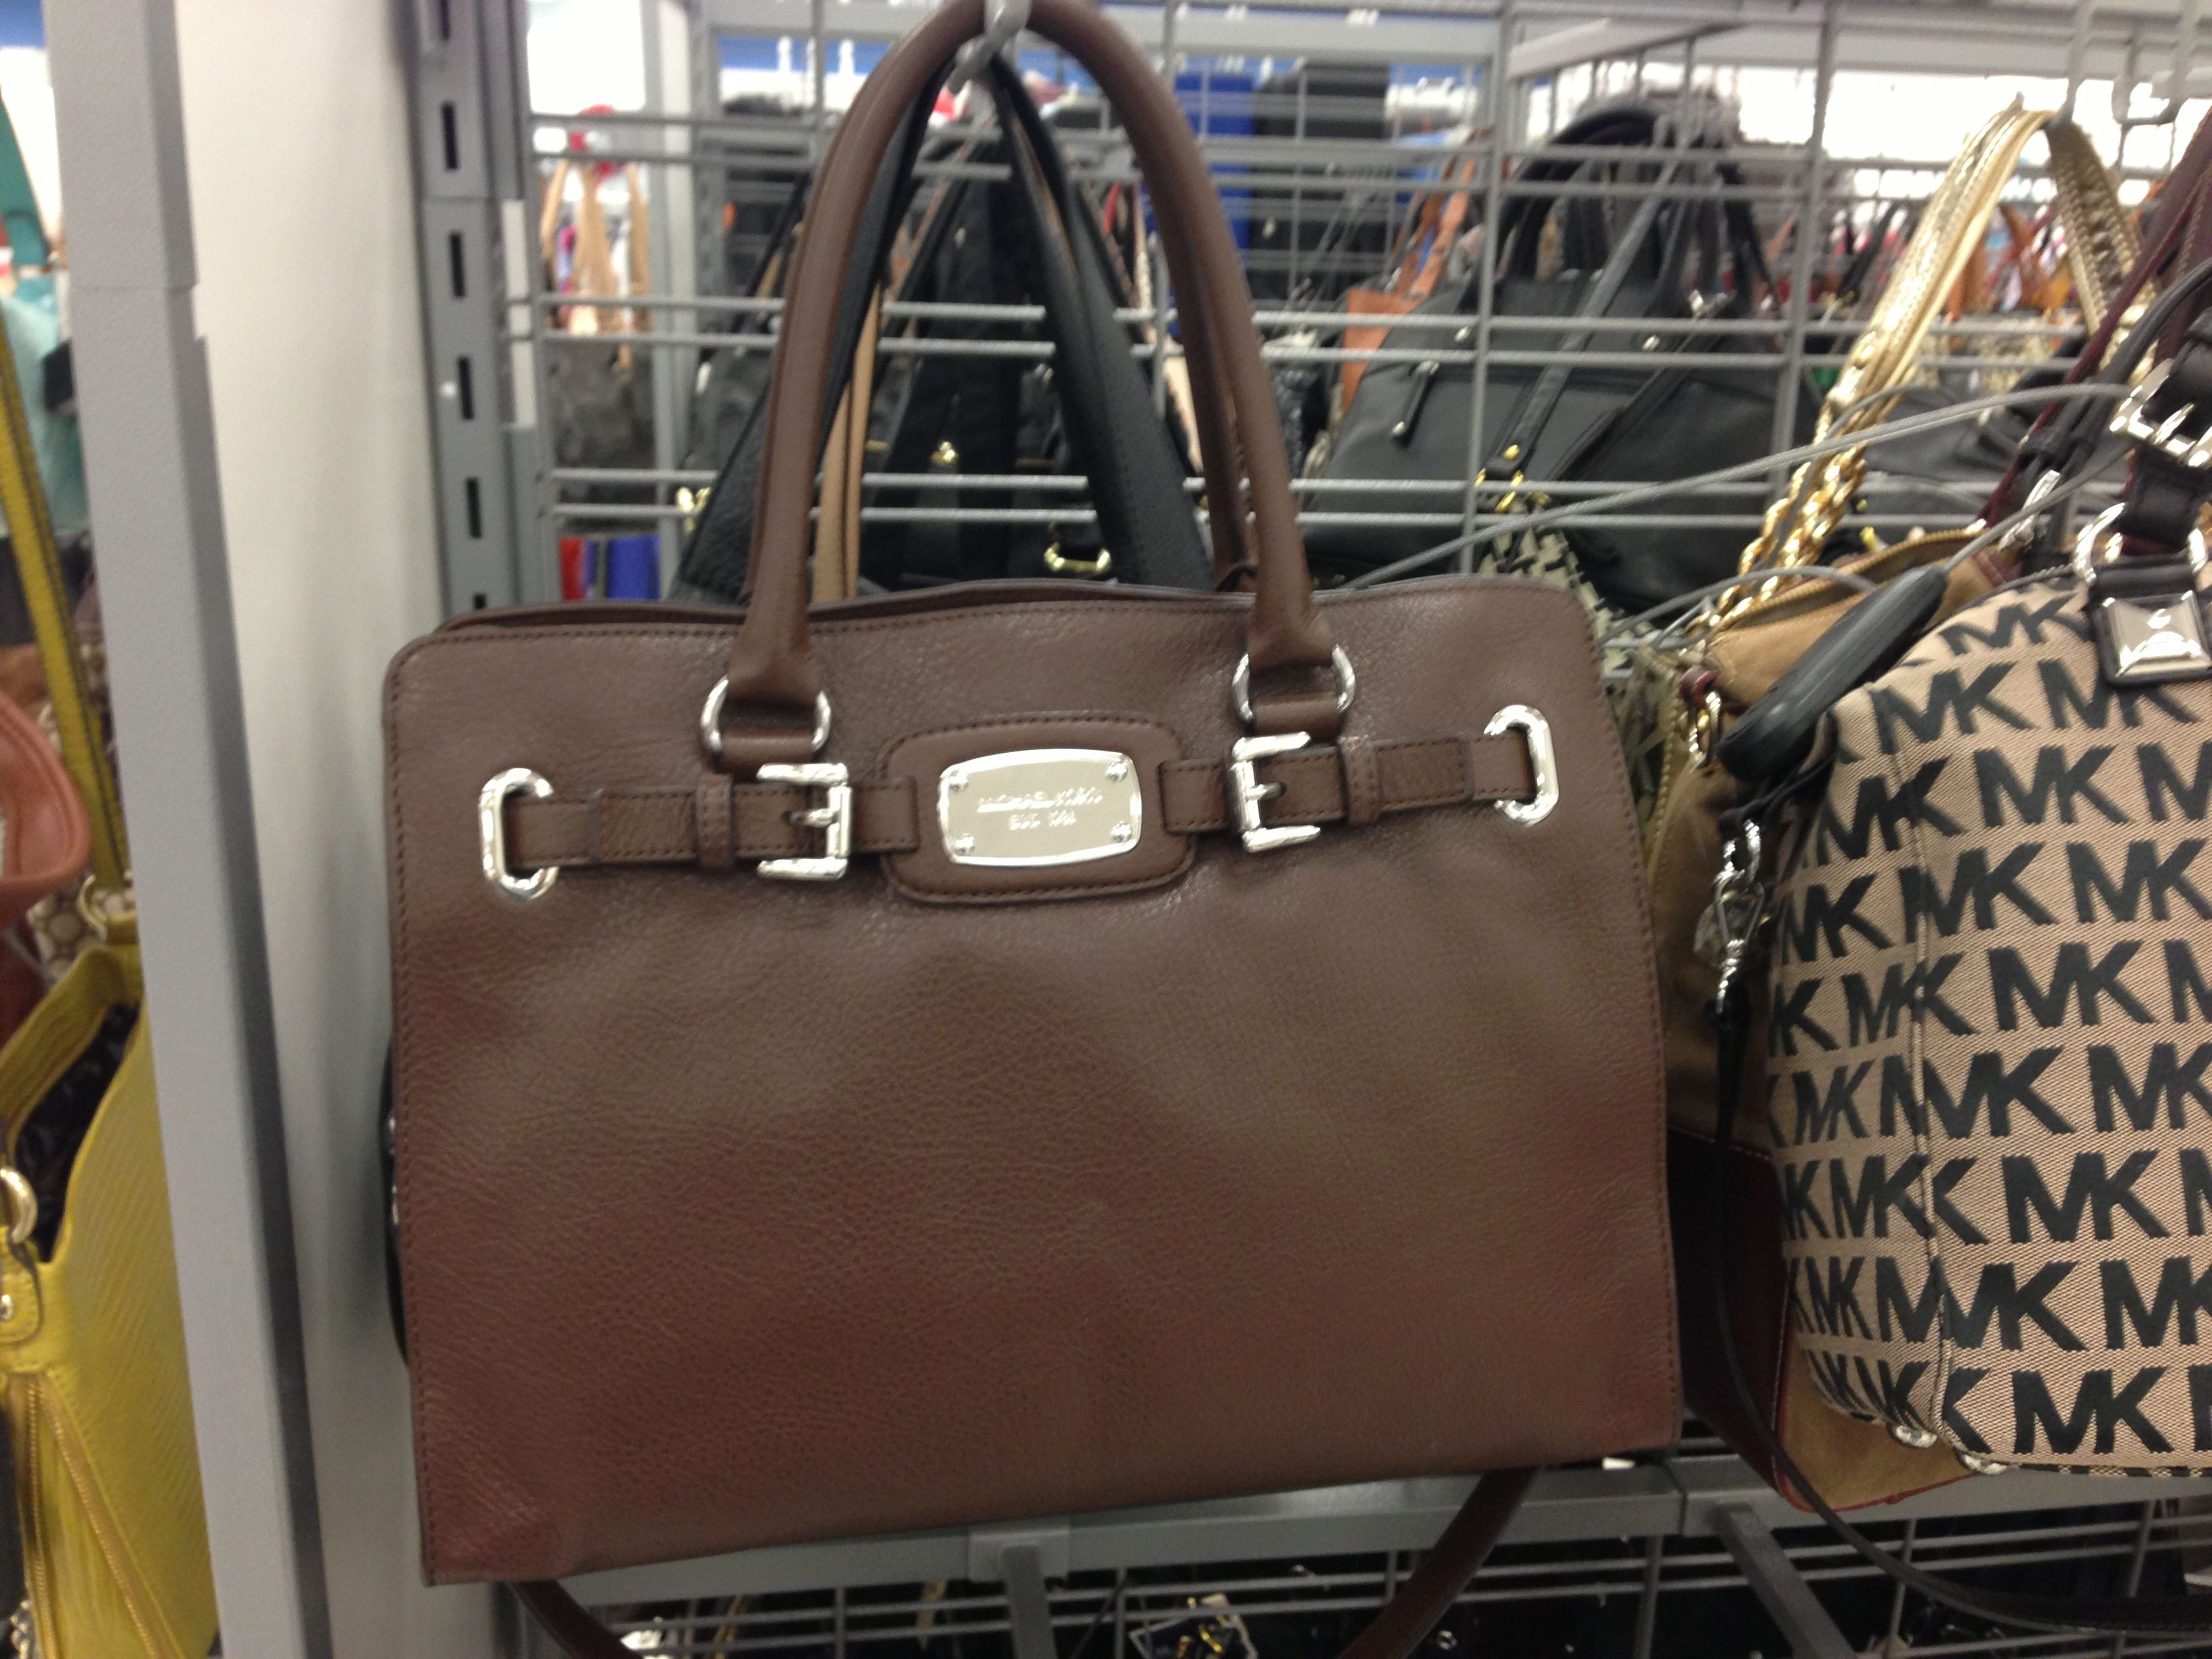 c4d214925de8 Michael Kors bag I found at Marshall s - B-E-A - Utiful!